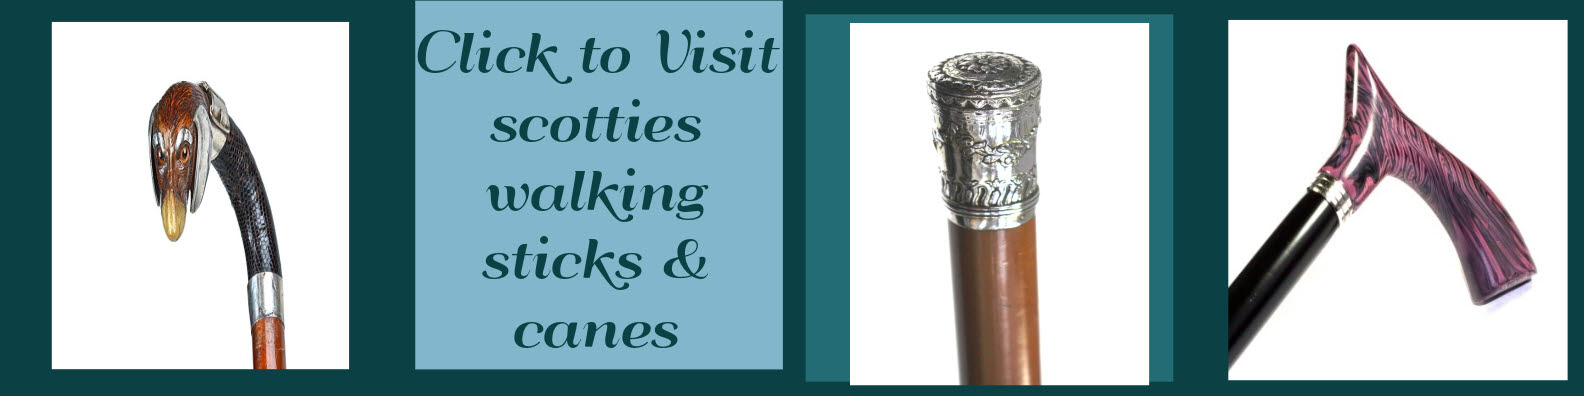 Pay a visit to Scotties Walking Sticks & Canes